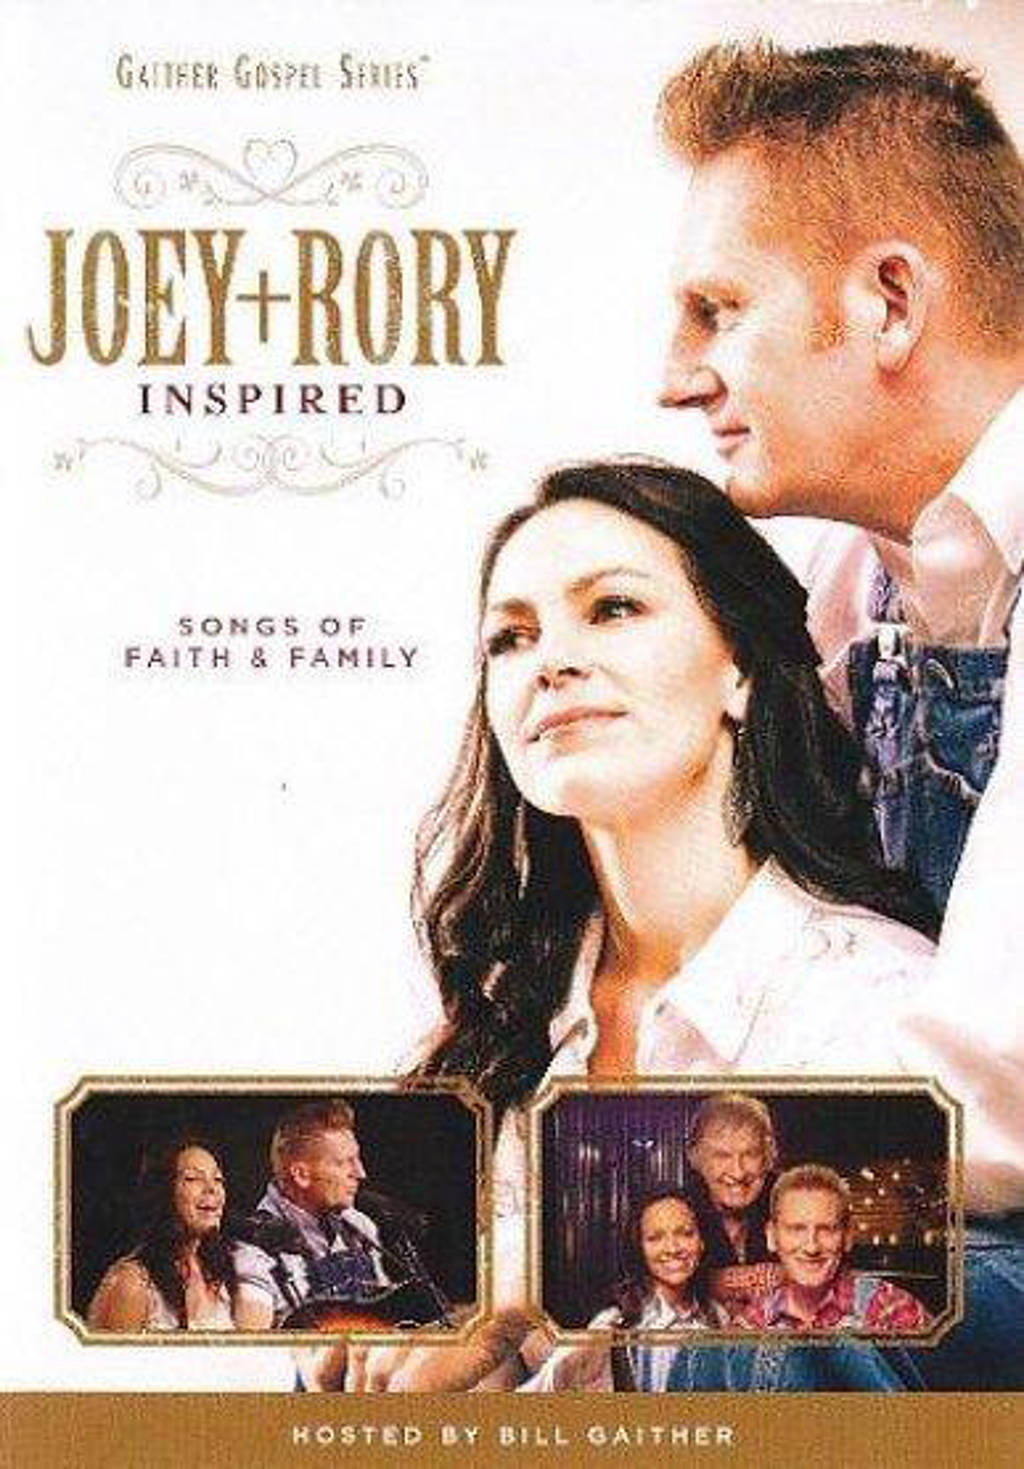 Joey + Rory - Inspired (DVD)